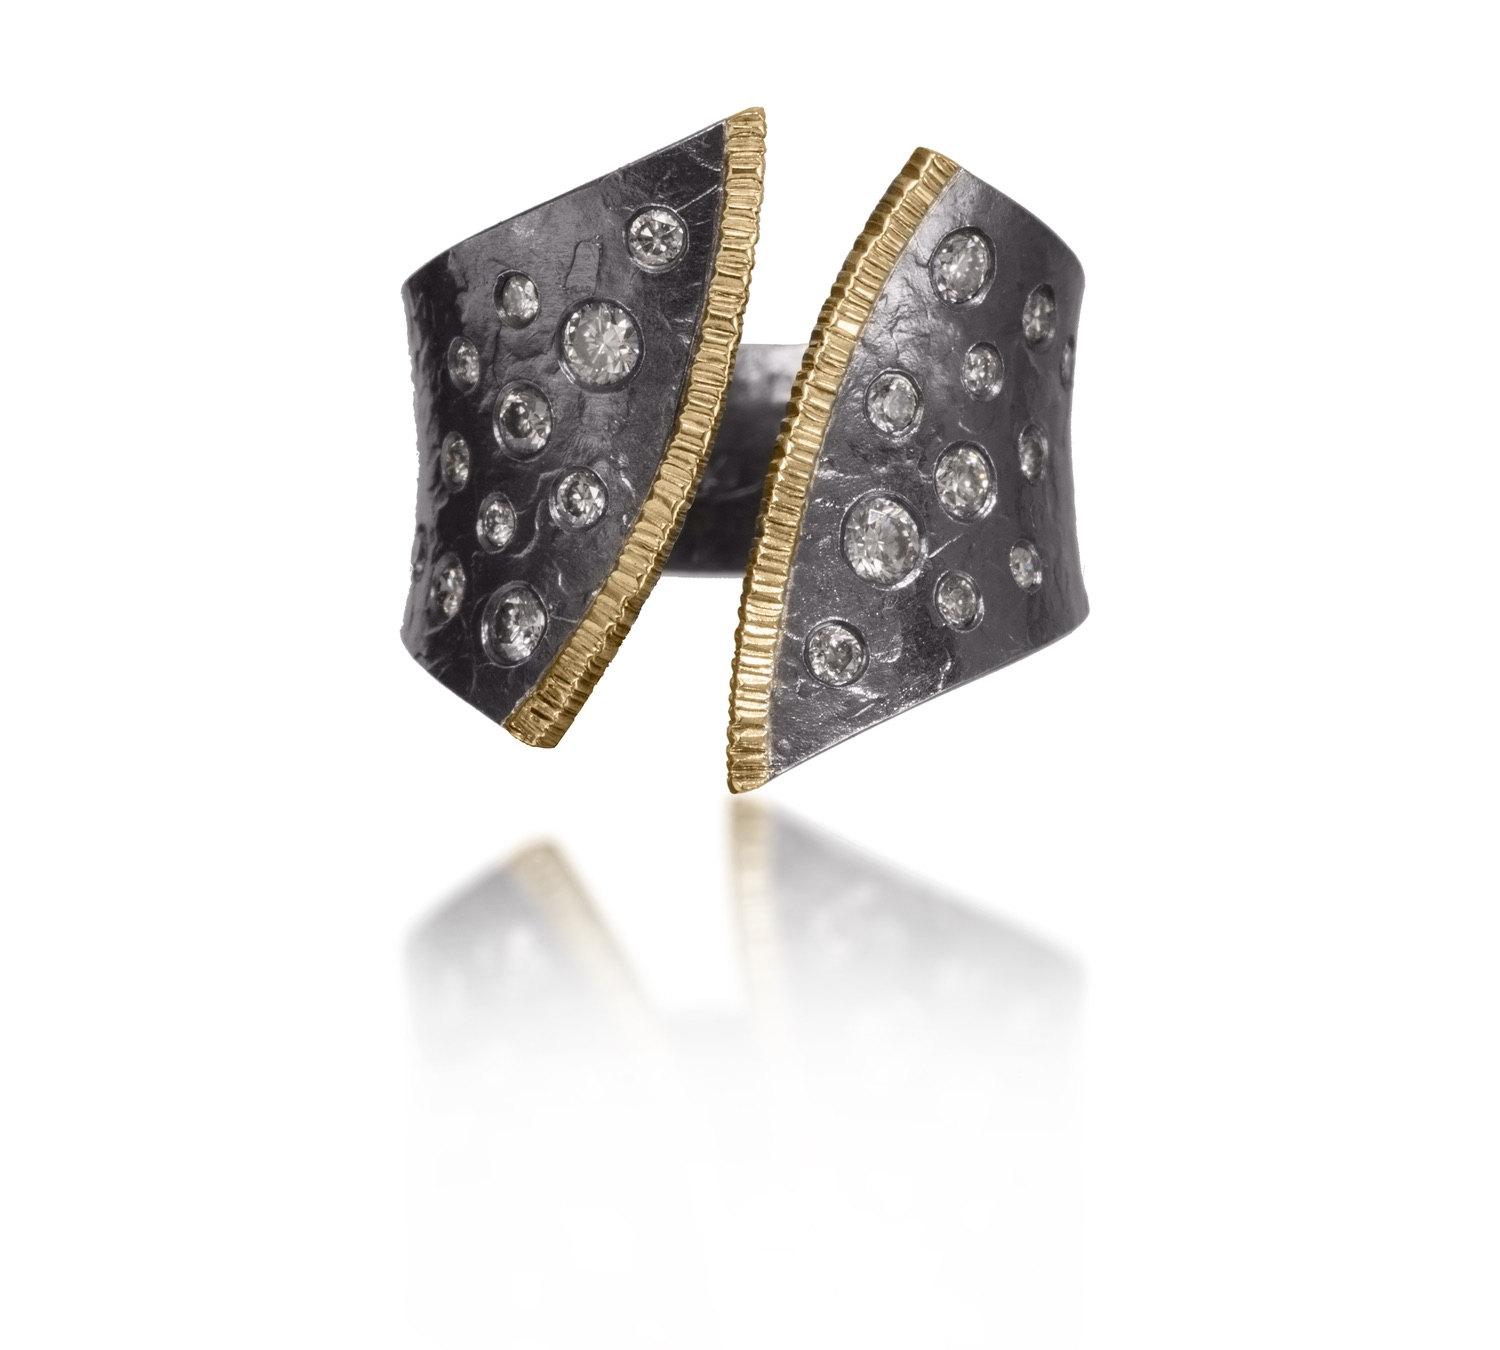 The Jewel - Elizabeth Garvin - Lookbook - Silver and Gold Diamond Studded Ring